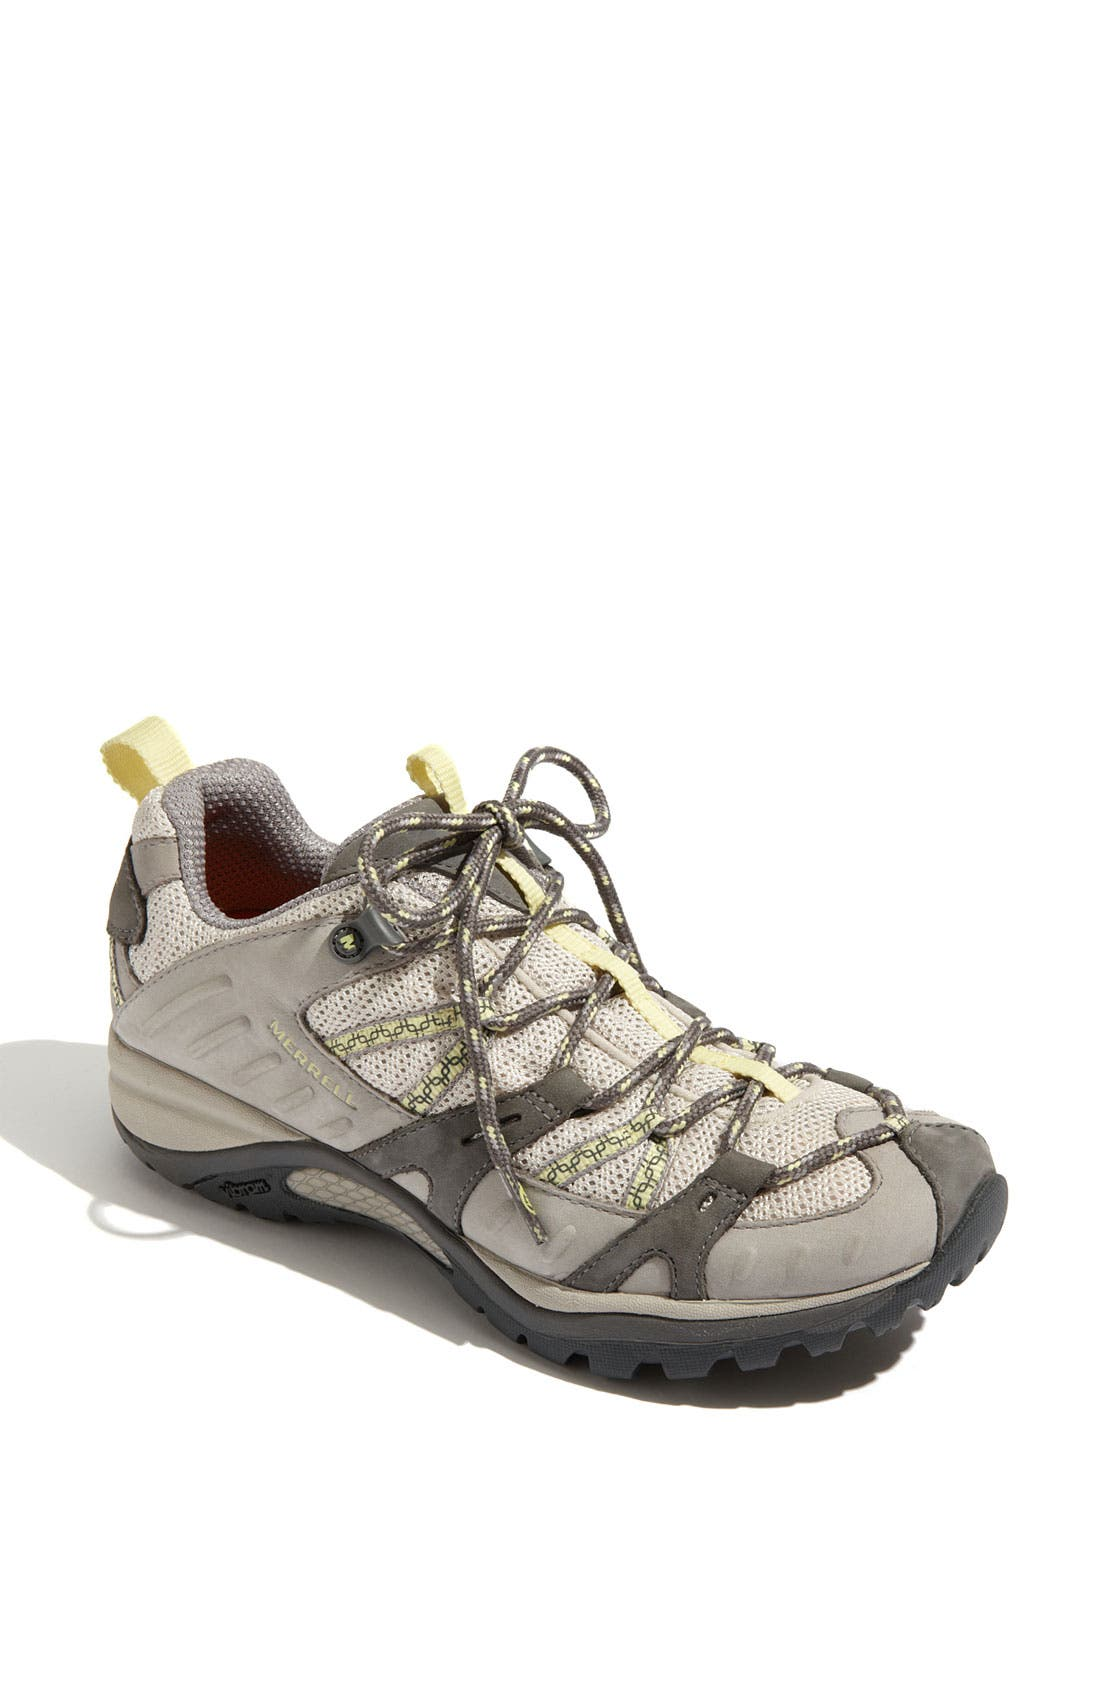 Alternate Image 1 Selected - Merrell 'Siren Sport' Outdoor Shoe (Women)